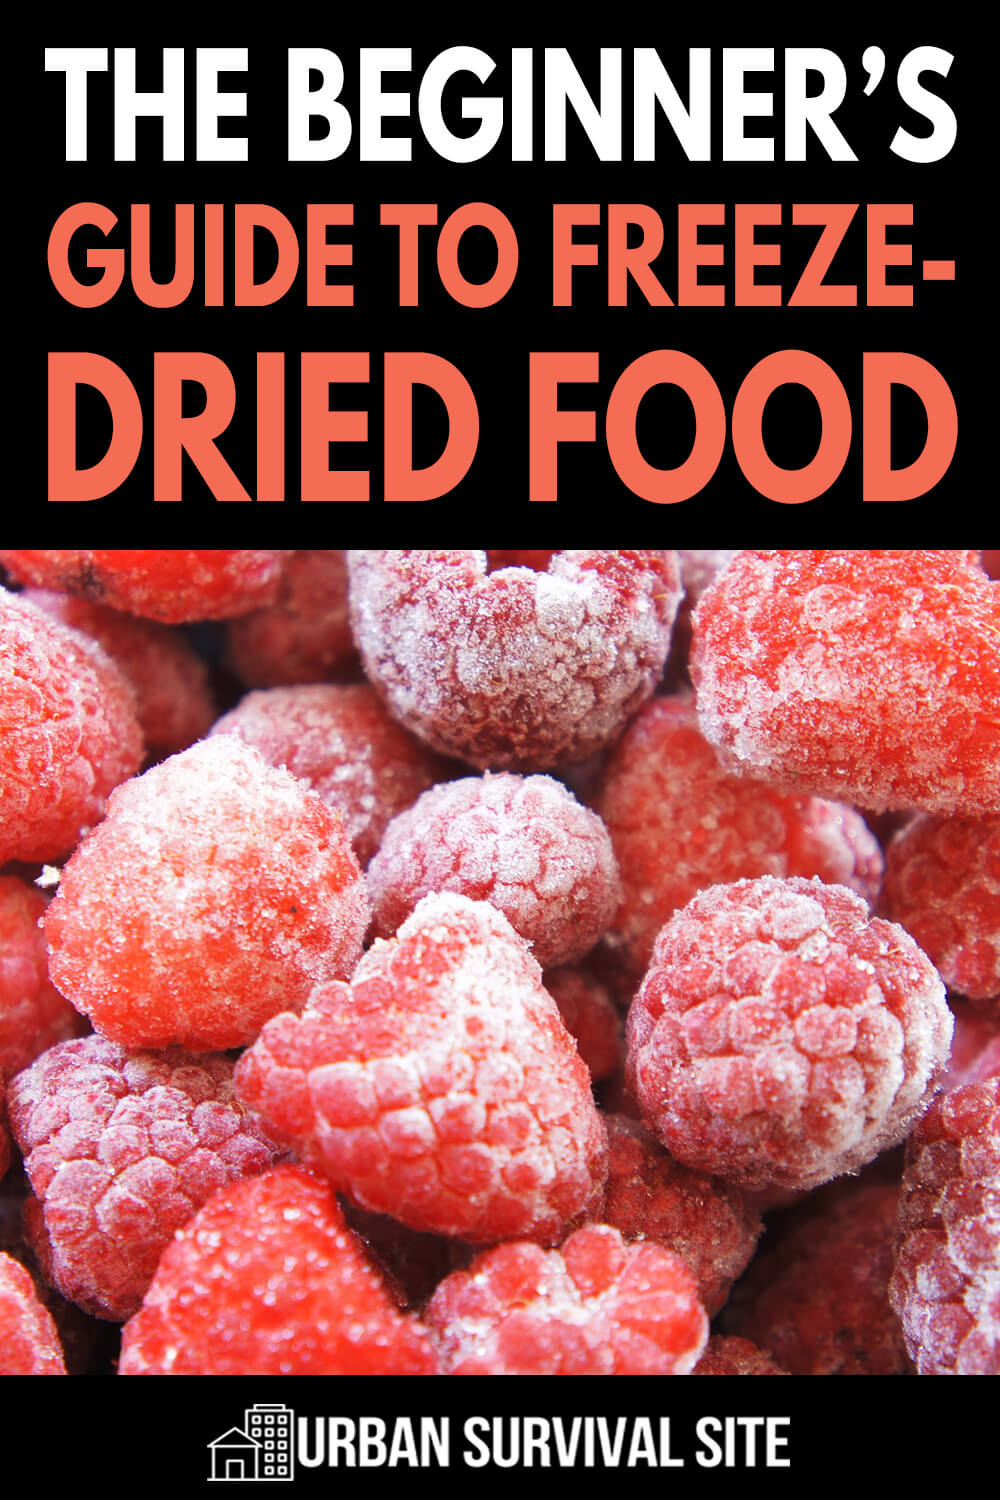 The Beginner's Guide to Freeze-Dried Food